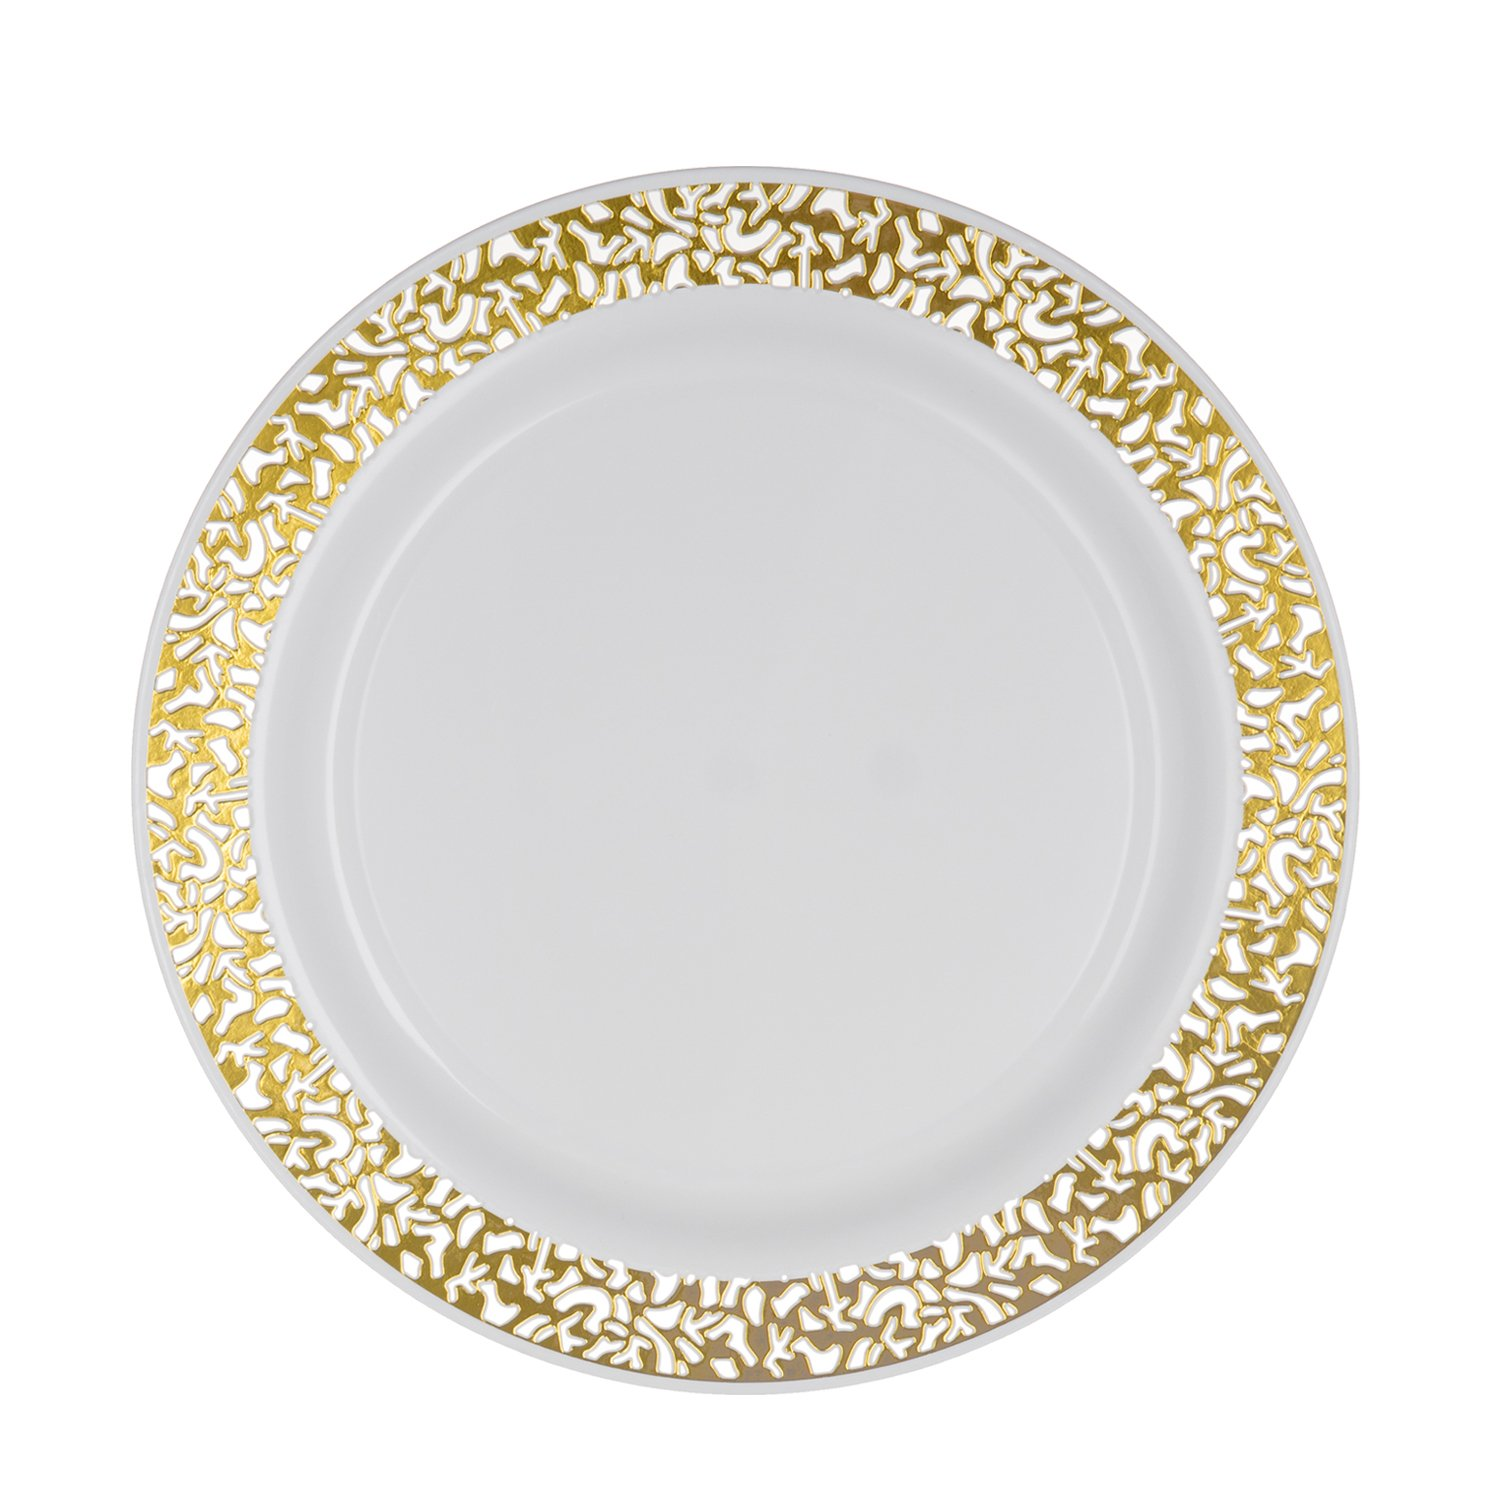 Party Essentials N367359 Plastic Plates with Silver Rim Case of 144 10.25-Inch White with Silver